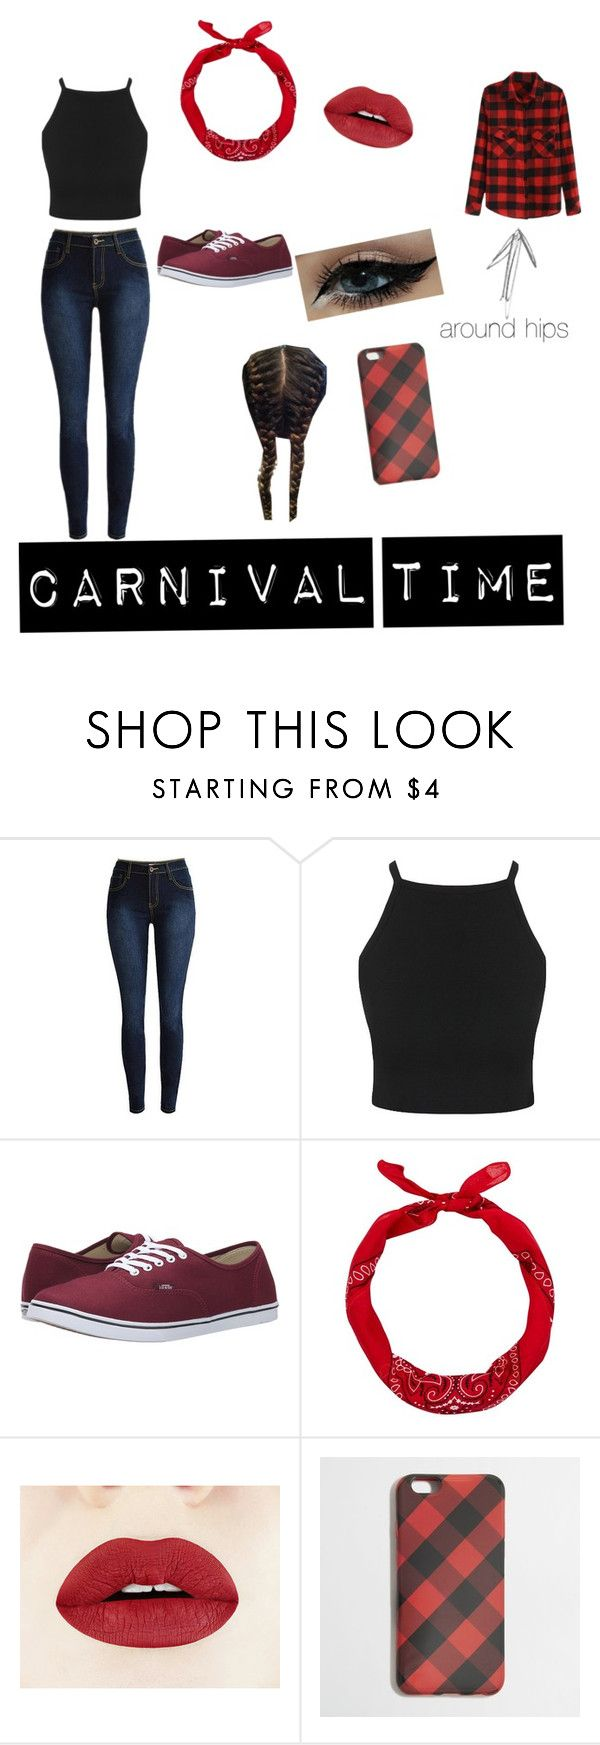 """carnival"" by bianca-grandao ❤ liked on Polyvore featuring Vans and J.Crew"